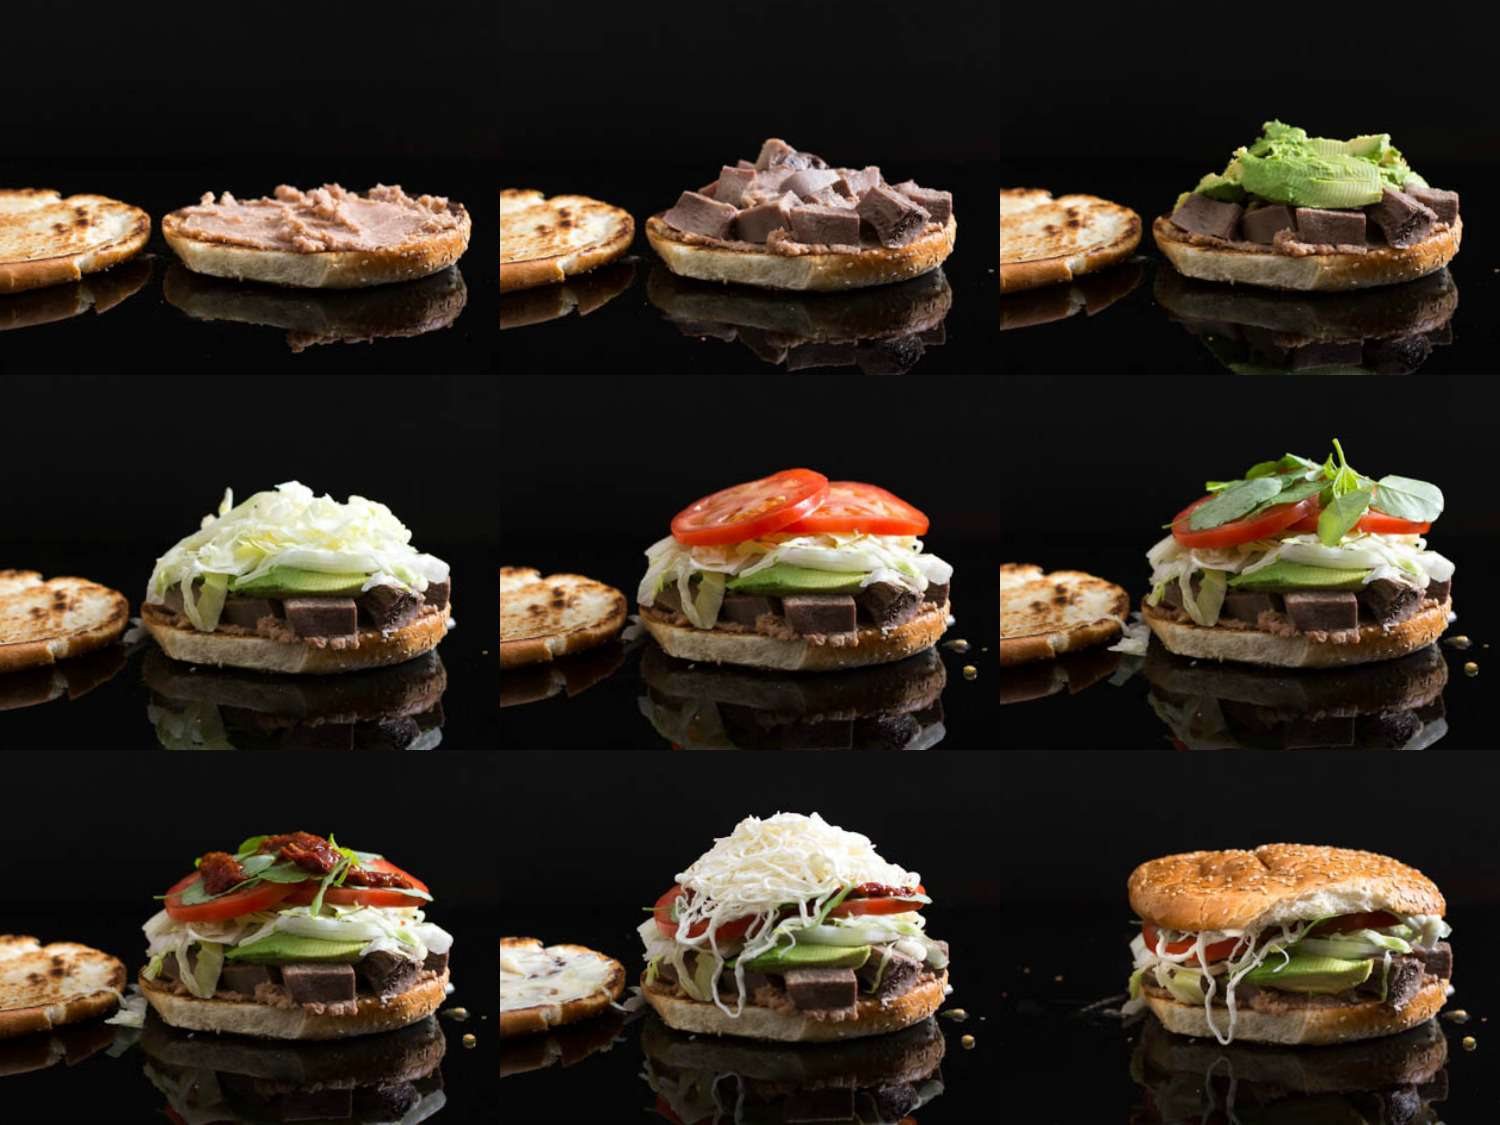 cemita-queens-assembly-collage.jpg